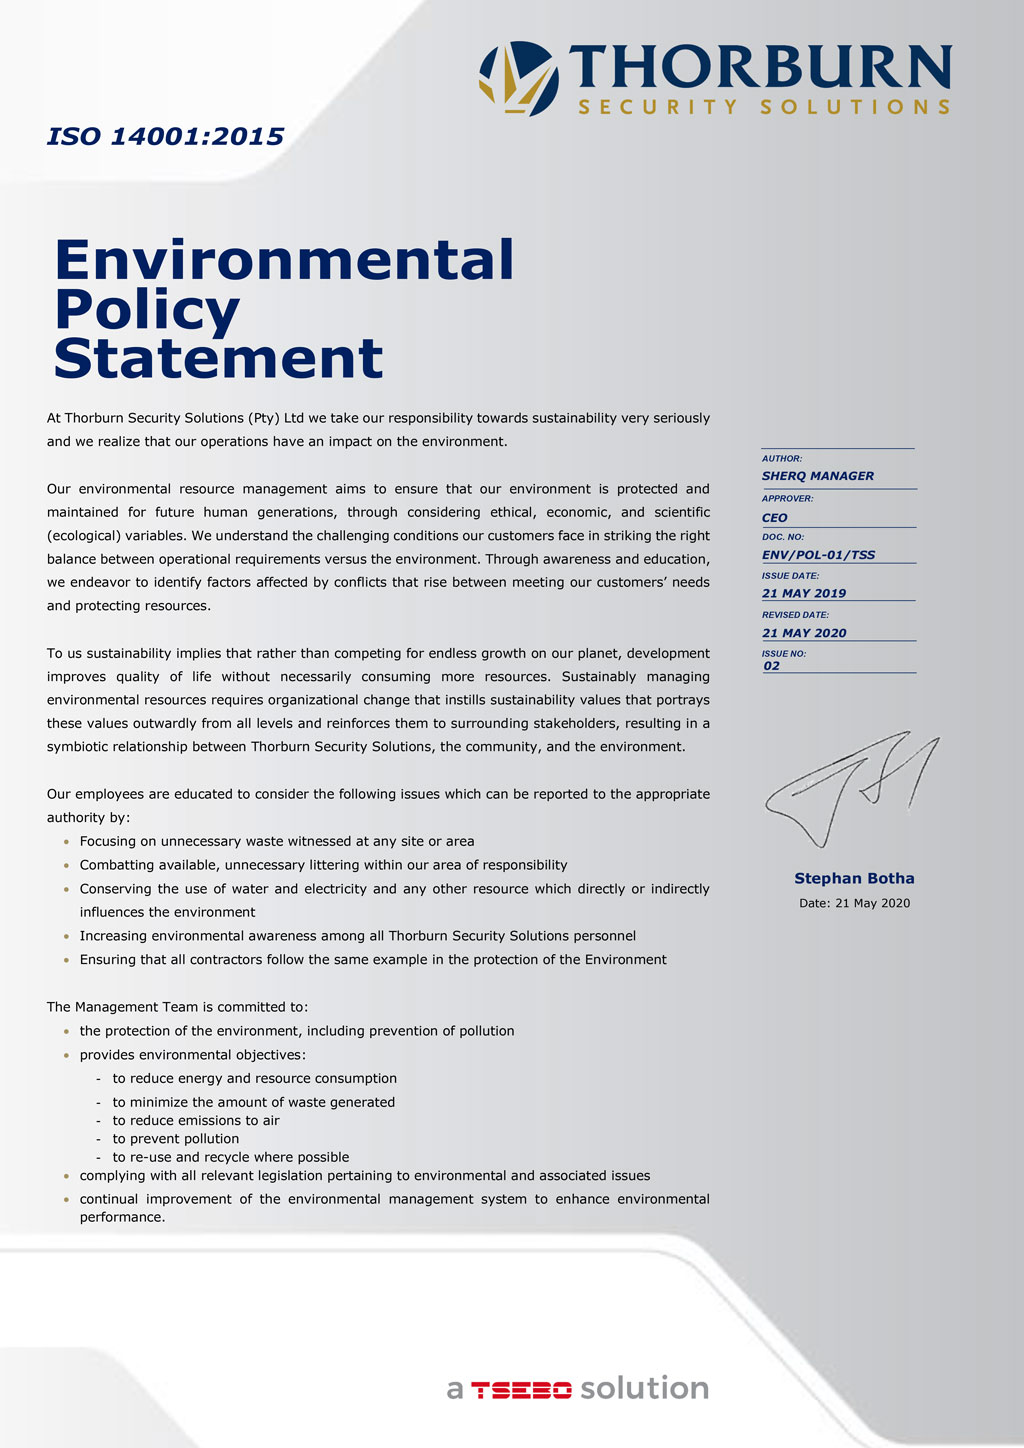 Thorburn Security Services South Africa - Our Values - Environmental Policy Statement